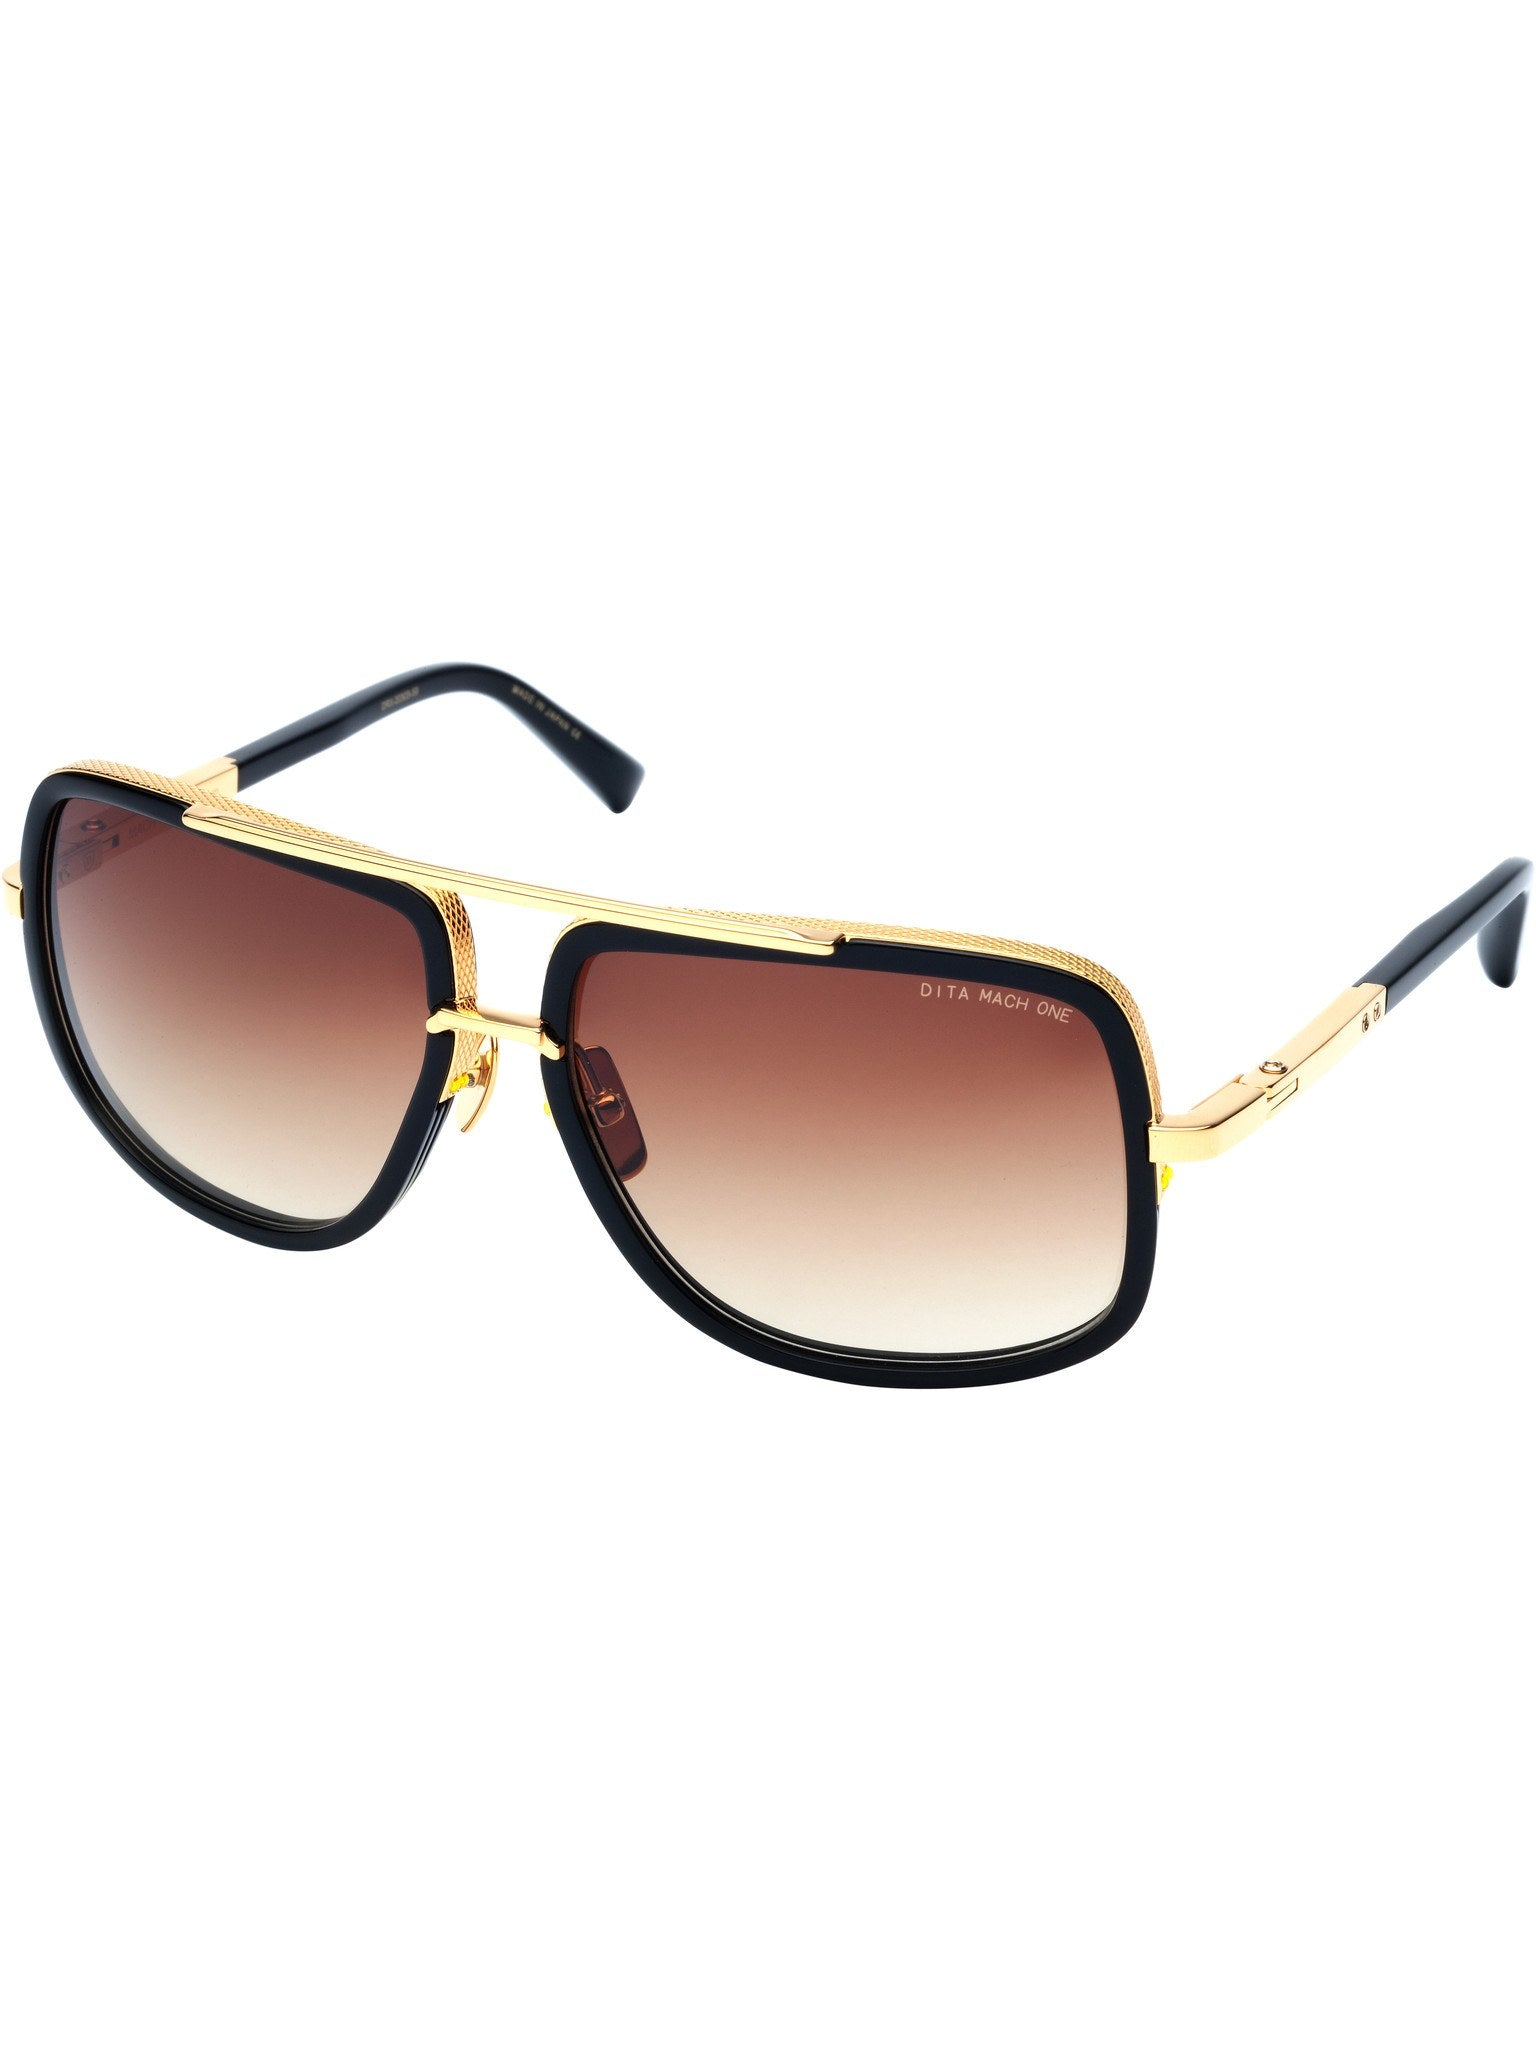 Sunglasses - Dita Mach-One DRX 2030B Sunglasses